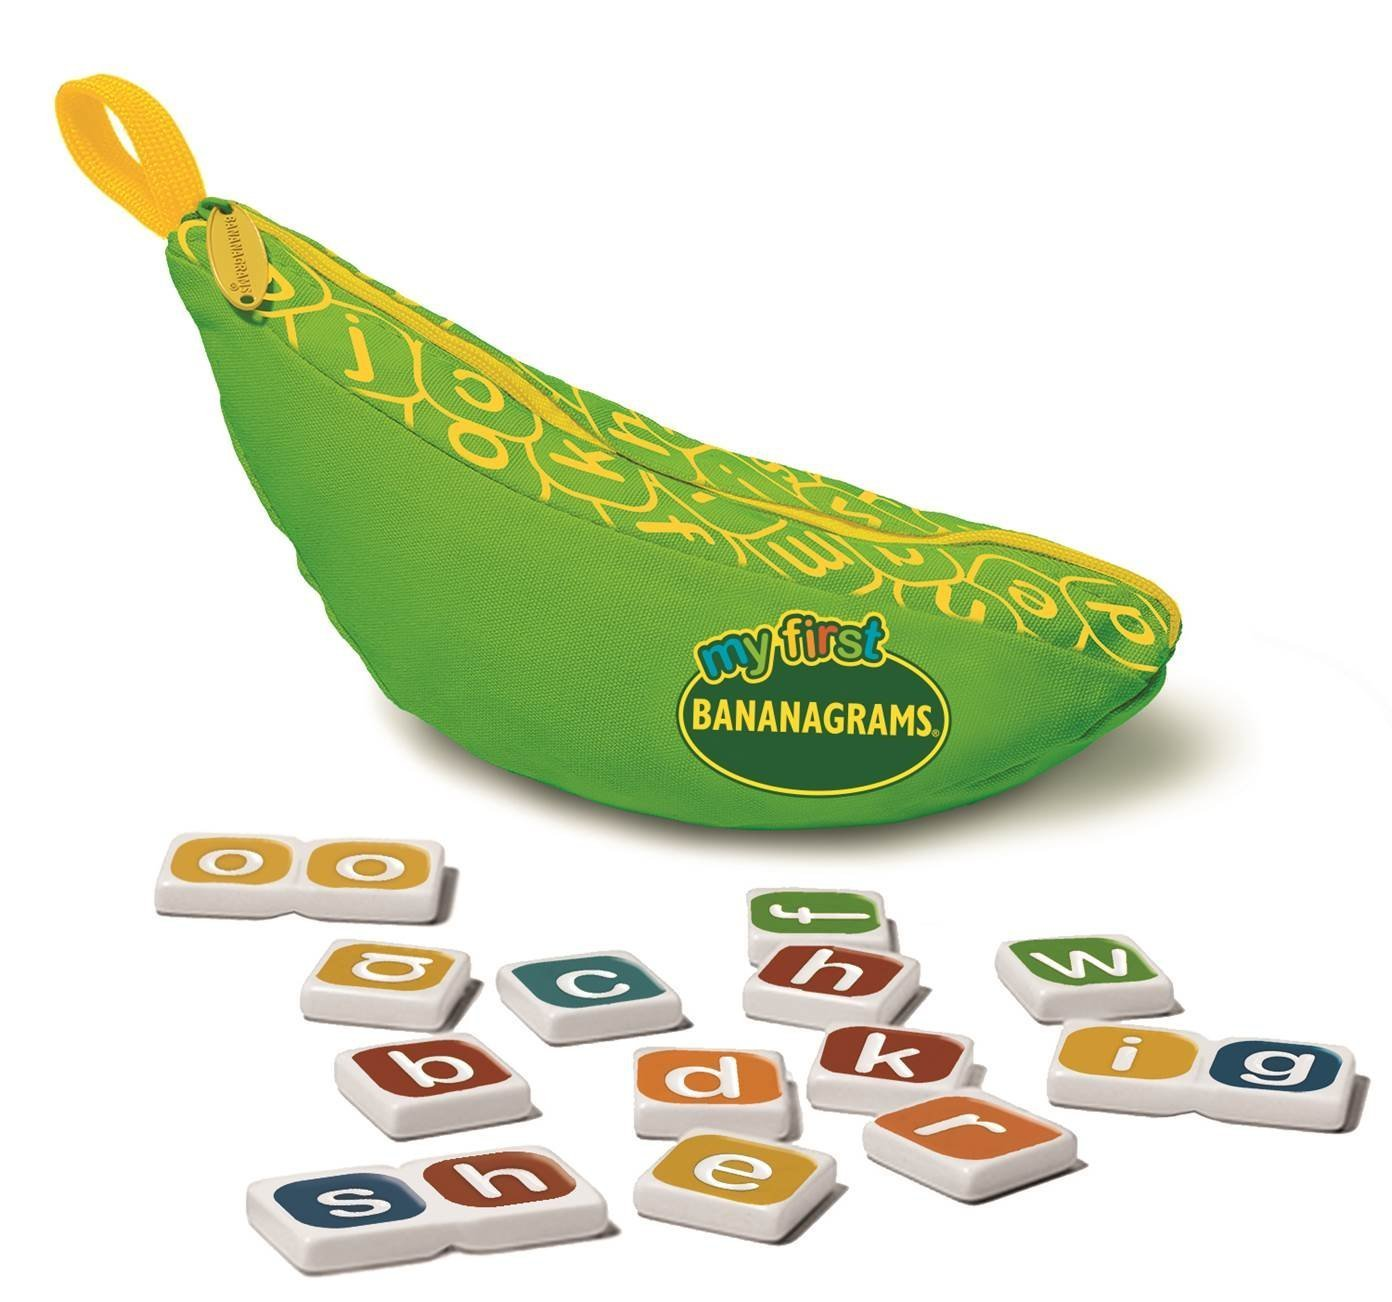 Bananagrams: My First Bananagrams